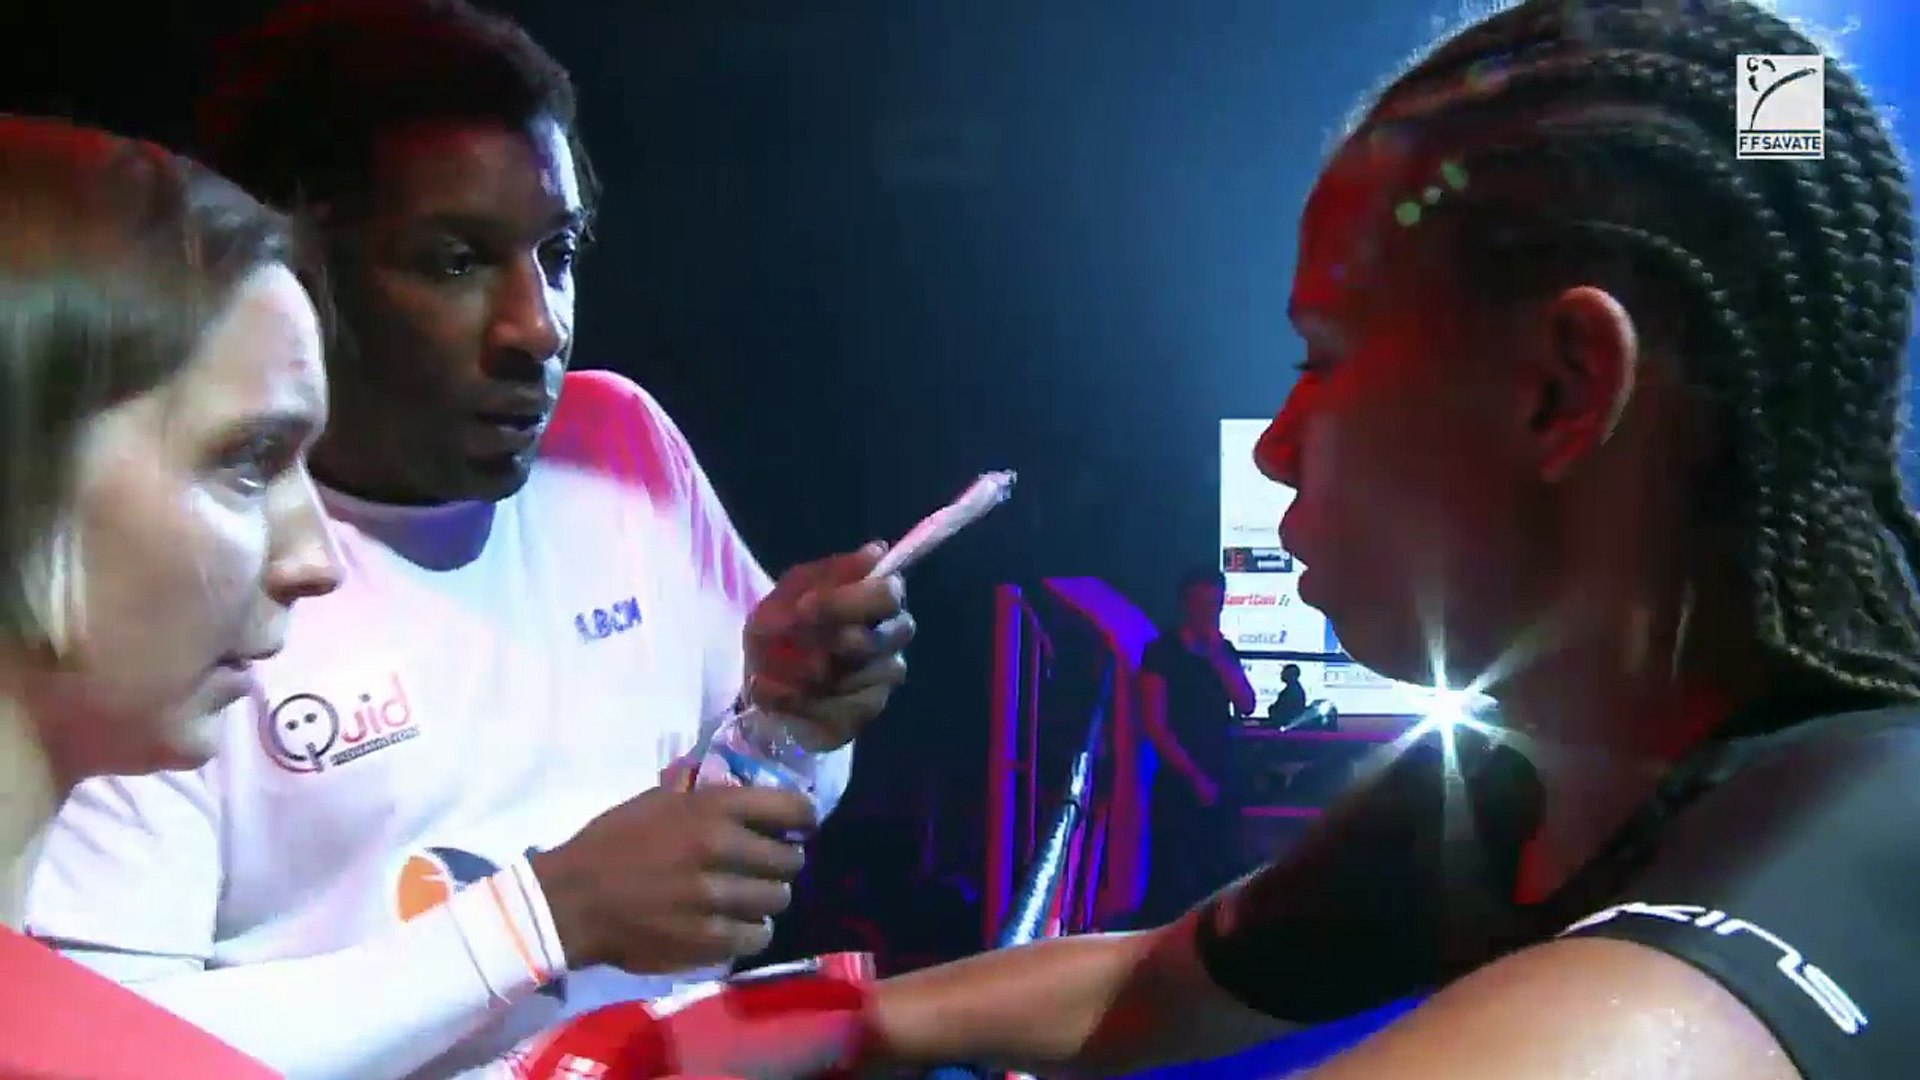 SAVATE BOXE FRANCAISE - FINALE ELITE A 2017 - Cat.F70 : Kanelle LEGER vs Cyrielle BORIES